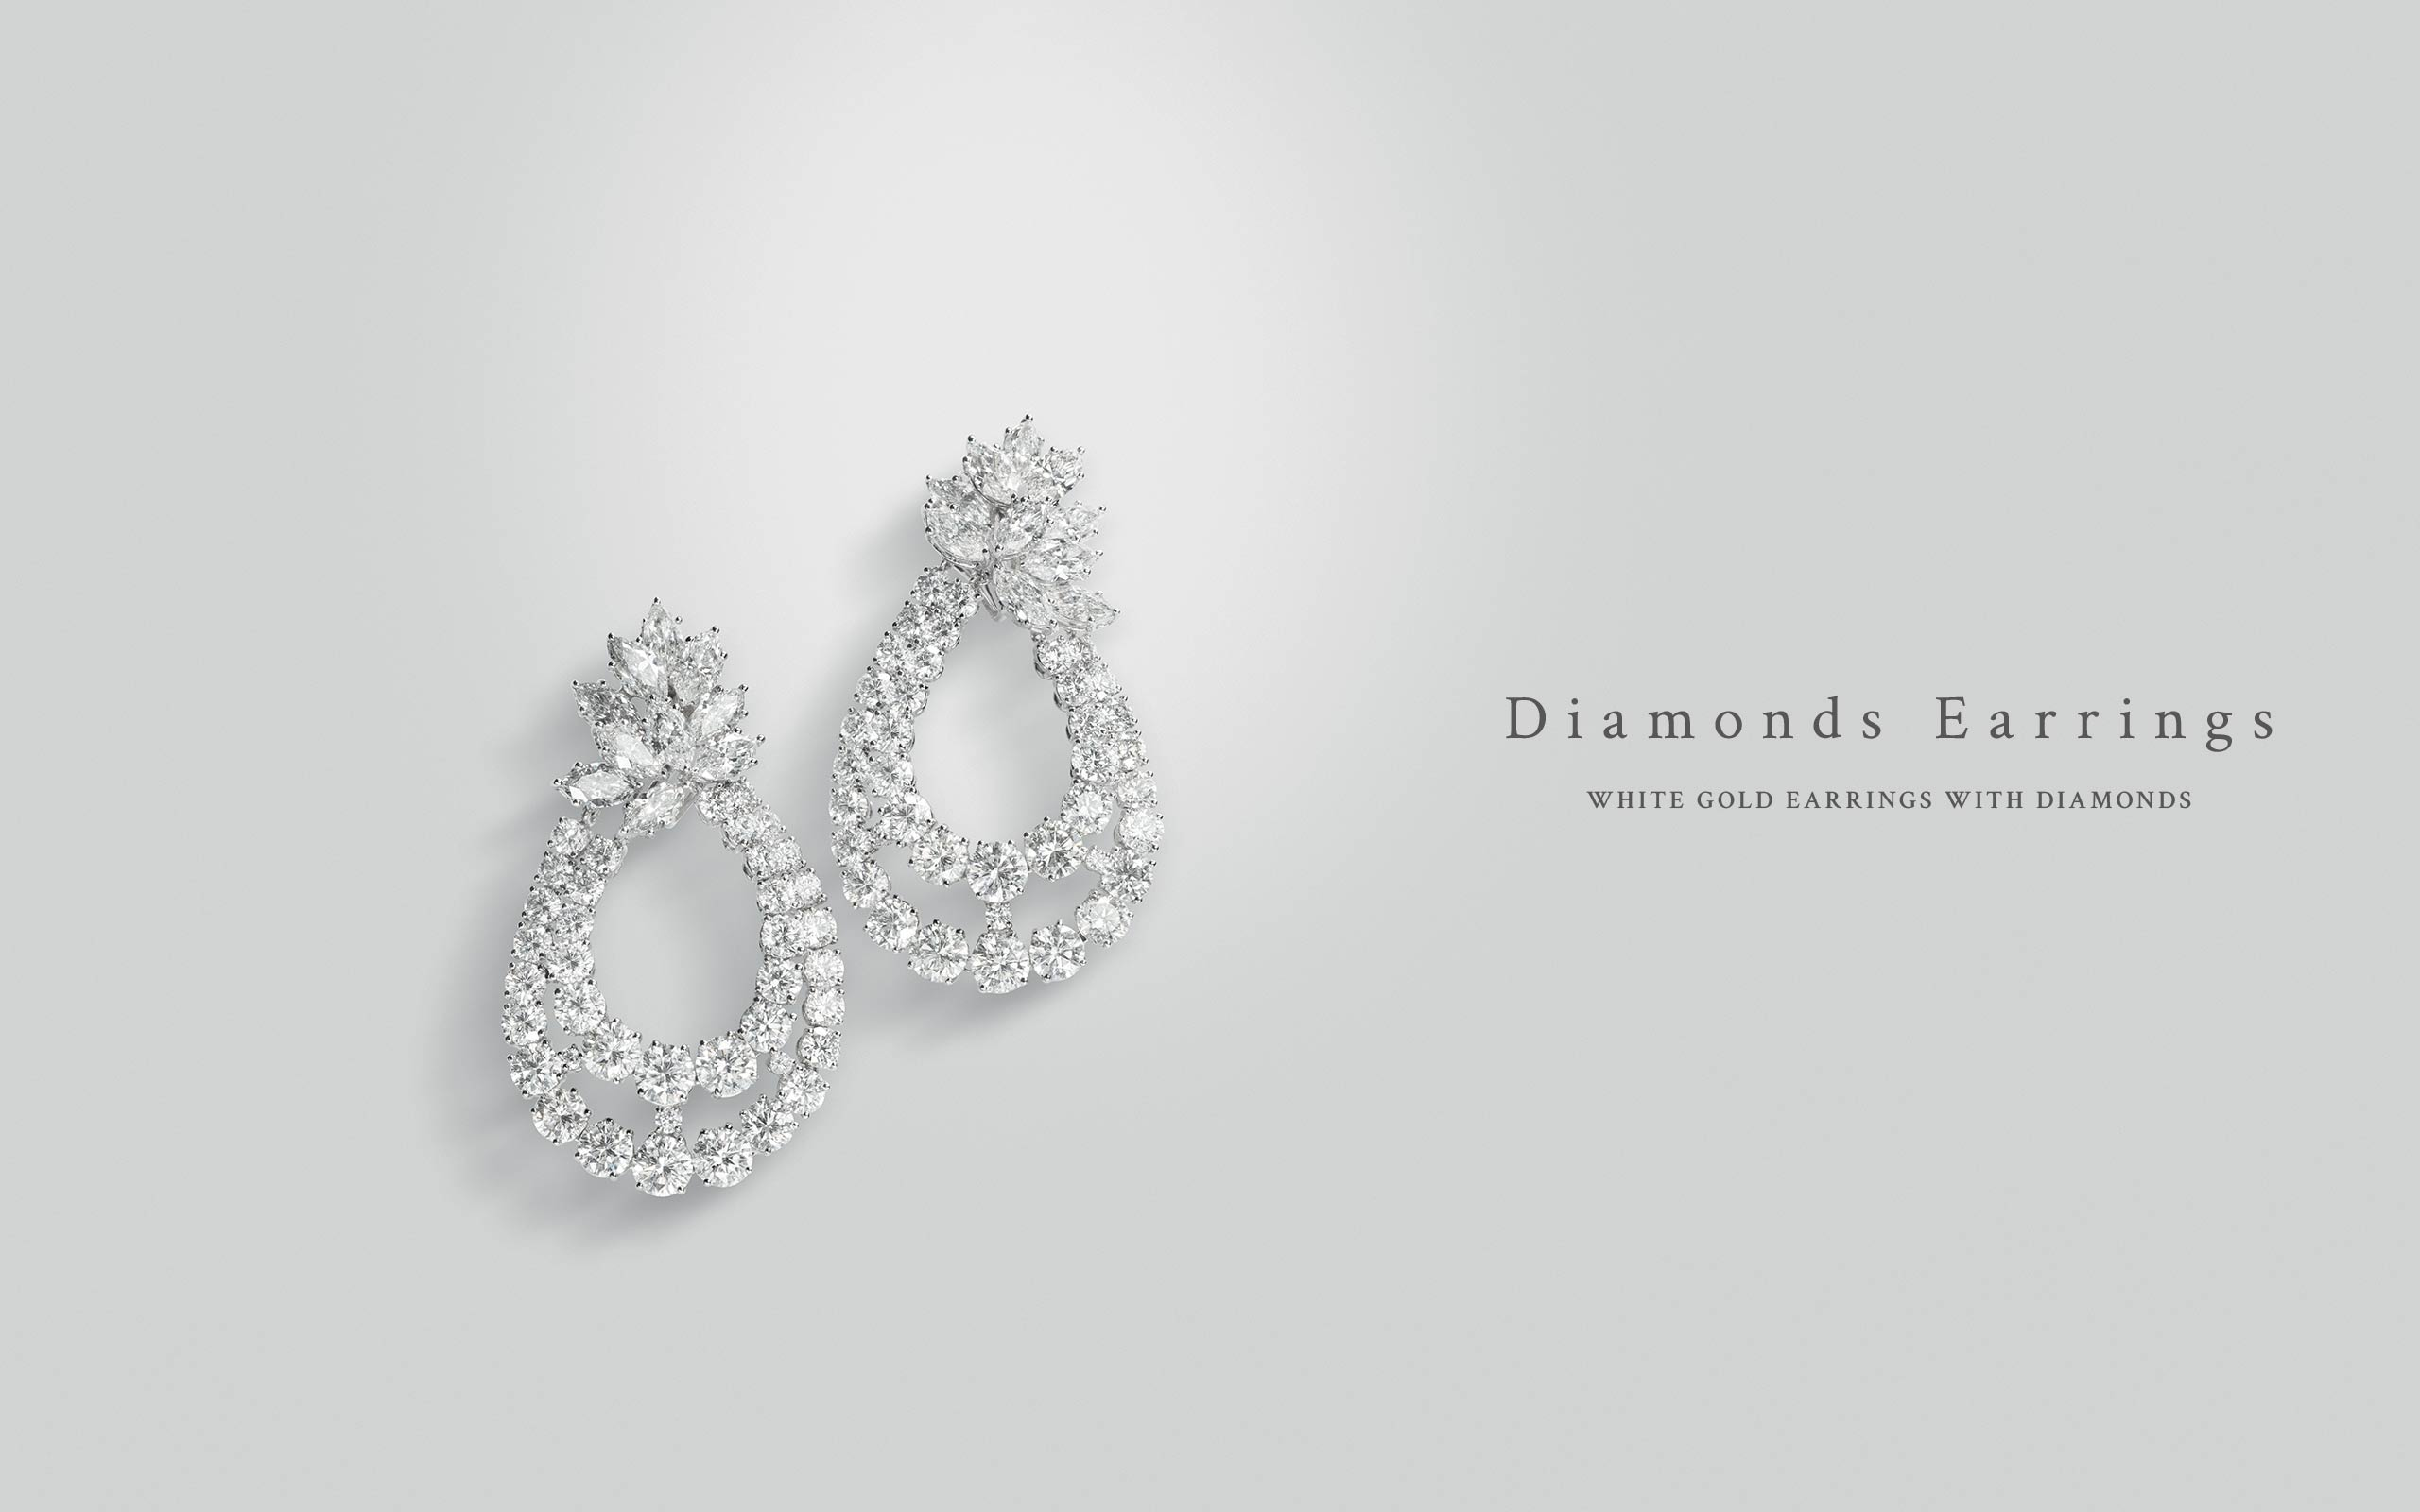 Diamonds Earrings 13 | Maria Gaspari